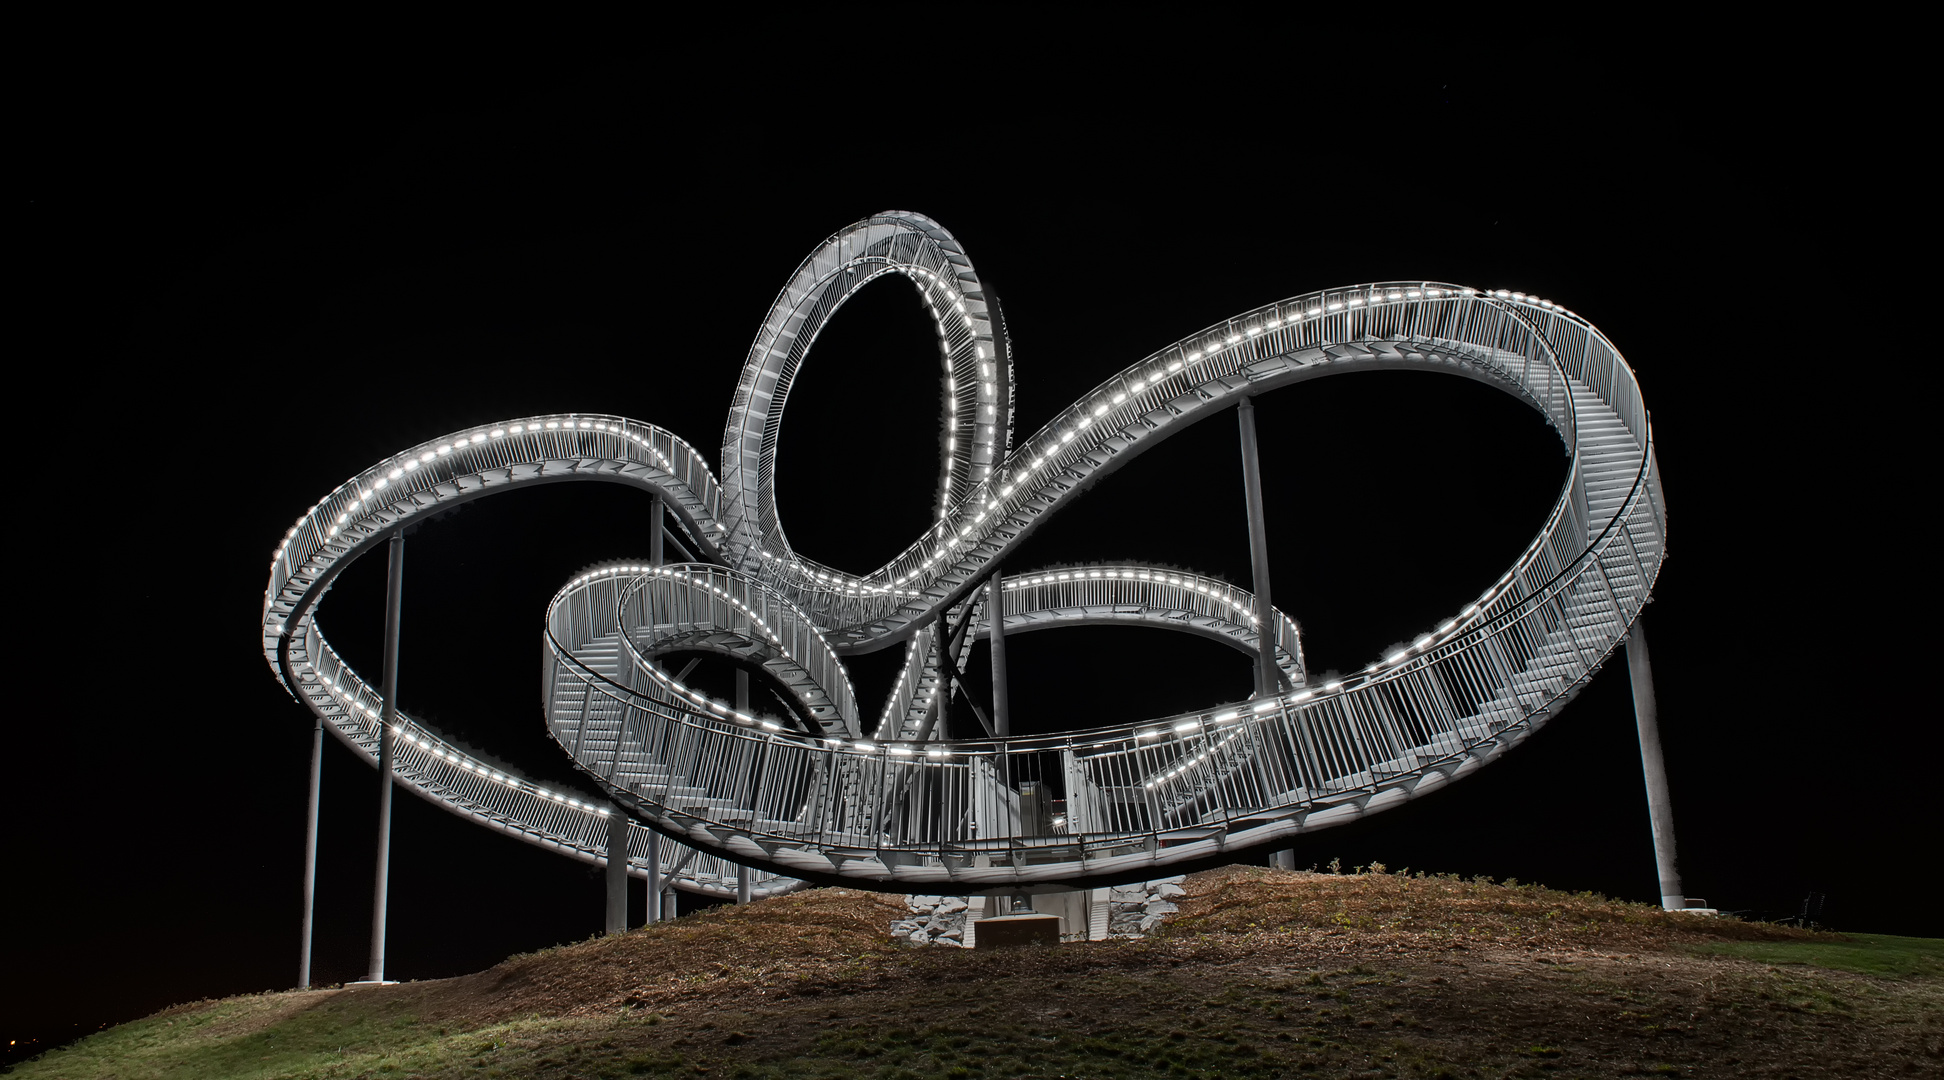 Tiger & Turtle / Magic Mountain